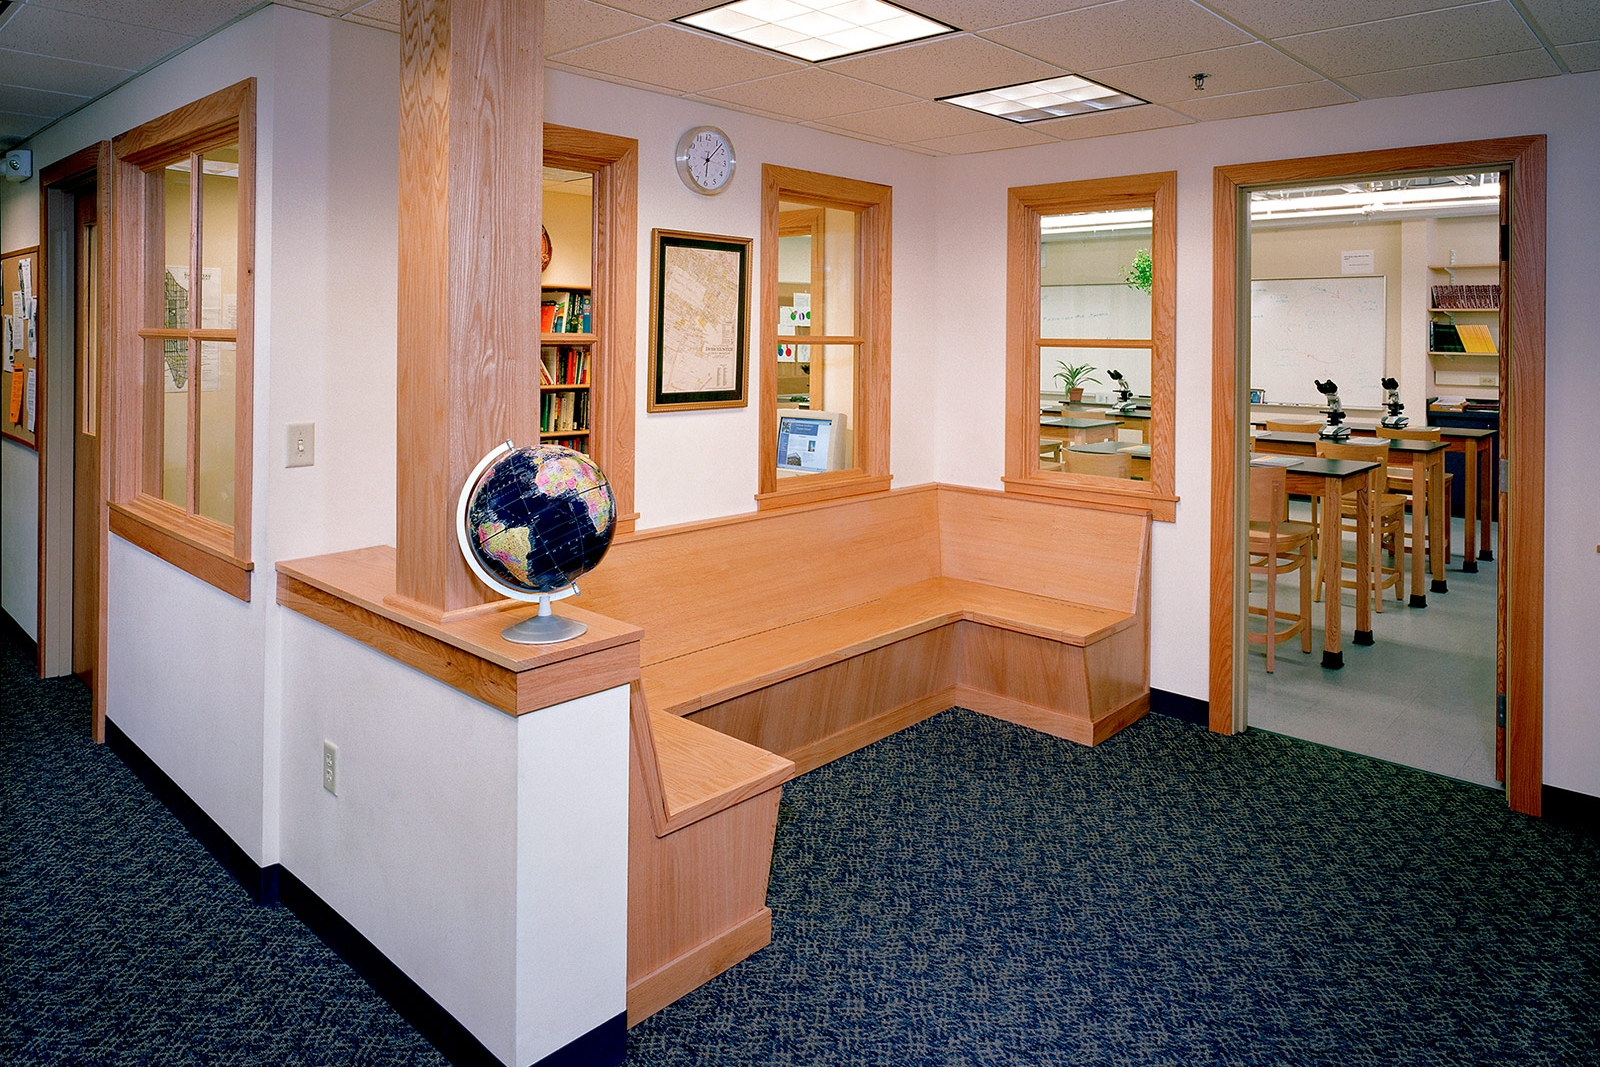 Codman Academy's initial high school facilities within Codman Square Health Center